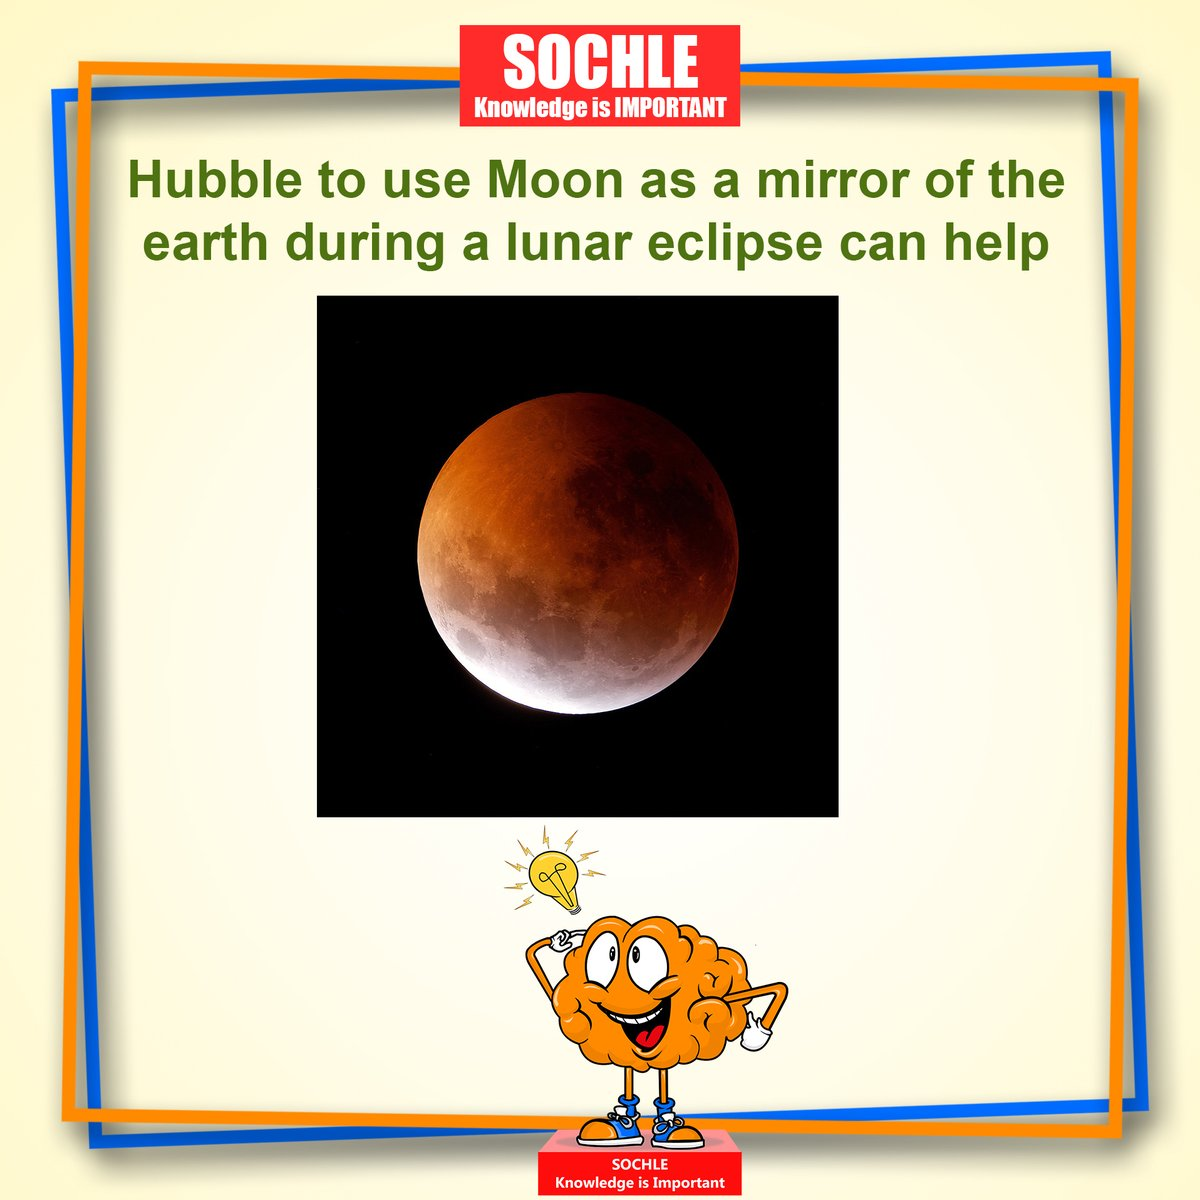 This was the first of its kind event that astronomers were able to capture a total lunar eclipse that was captured at ultraviolet wavelengths and a... Read More:https://facebook.com/TheSochle/ #Science #Scientist #Astronauts #Hubble #NASA #ISRO #technology #Thesochle #Students #knowledgepic.twitter.com/uAj1toK2Q3